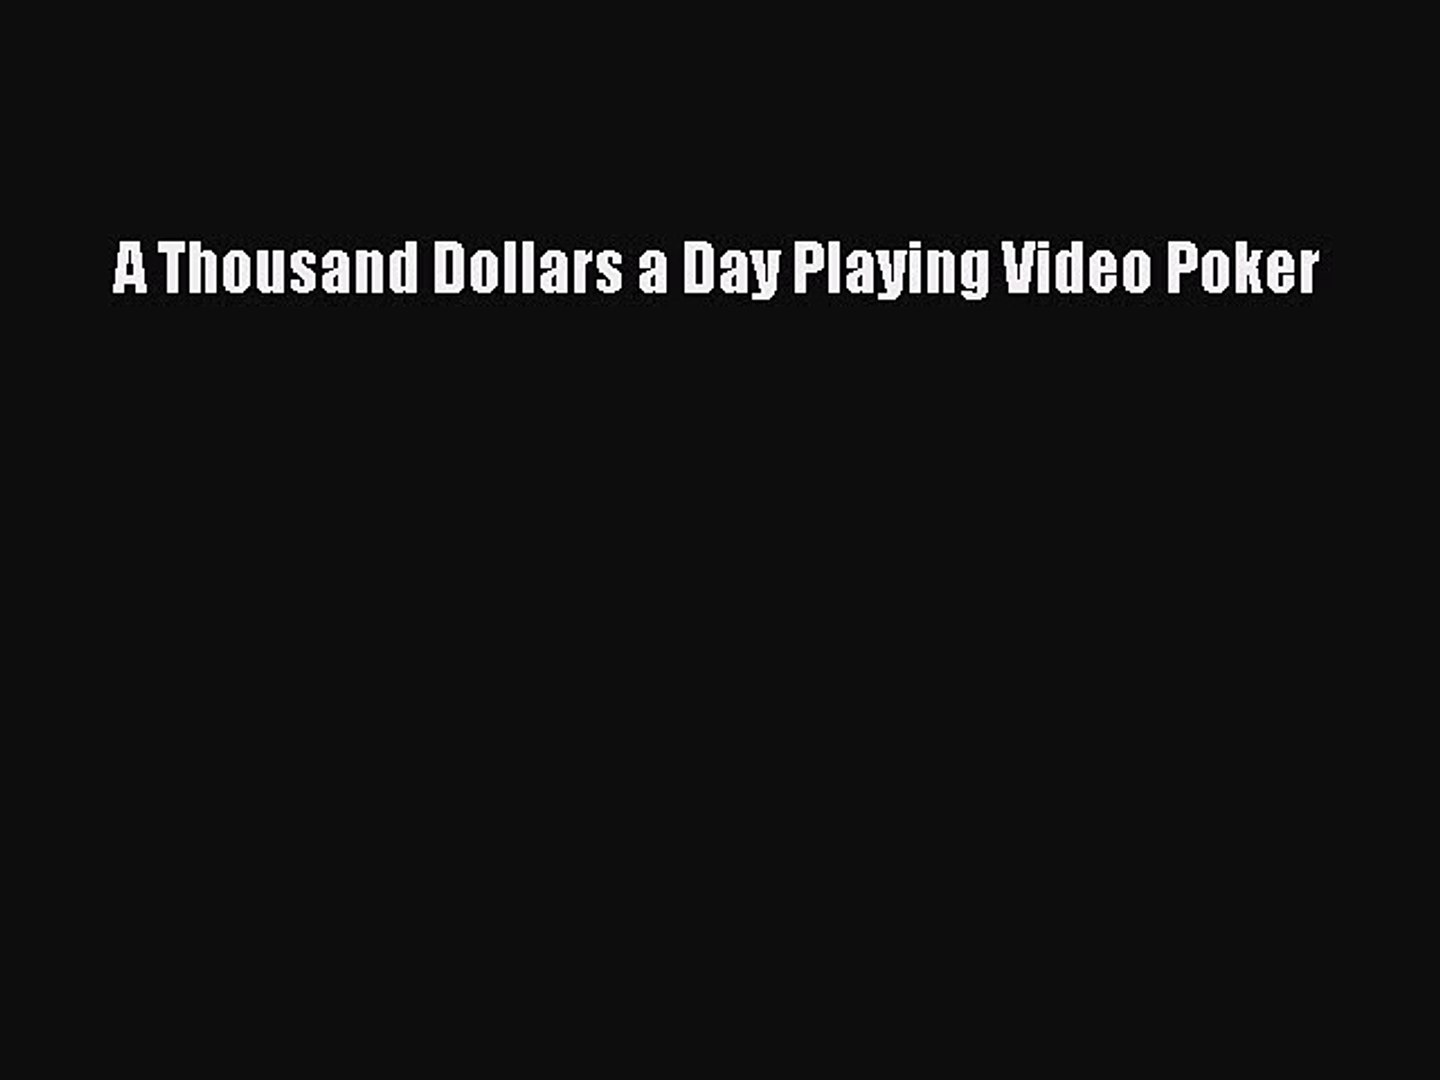 Read A Thousand Dollars a Day Playing Video Poker Ebook Online